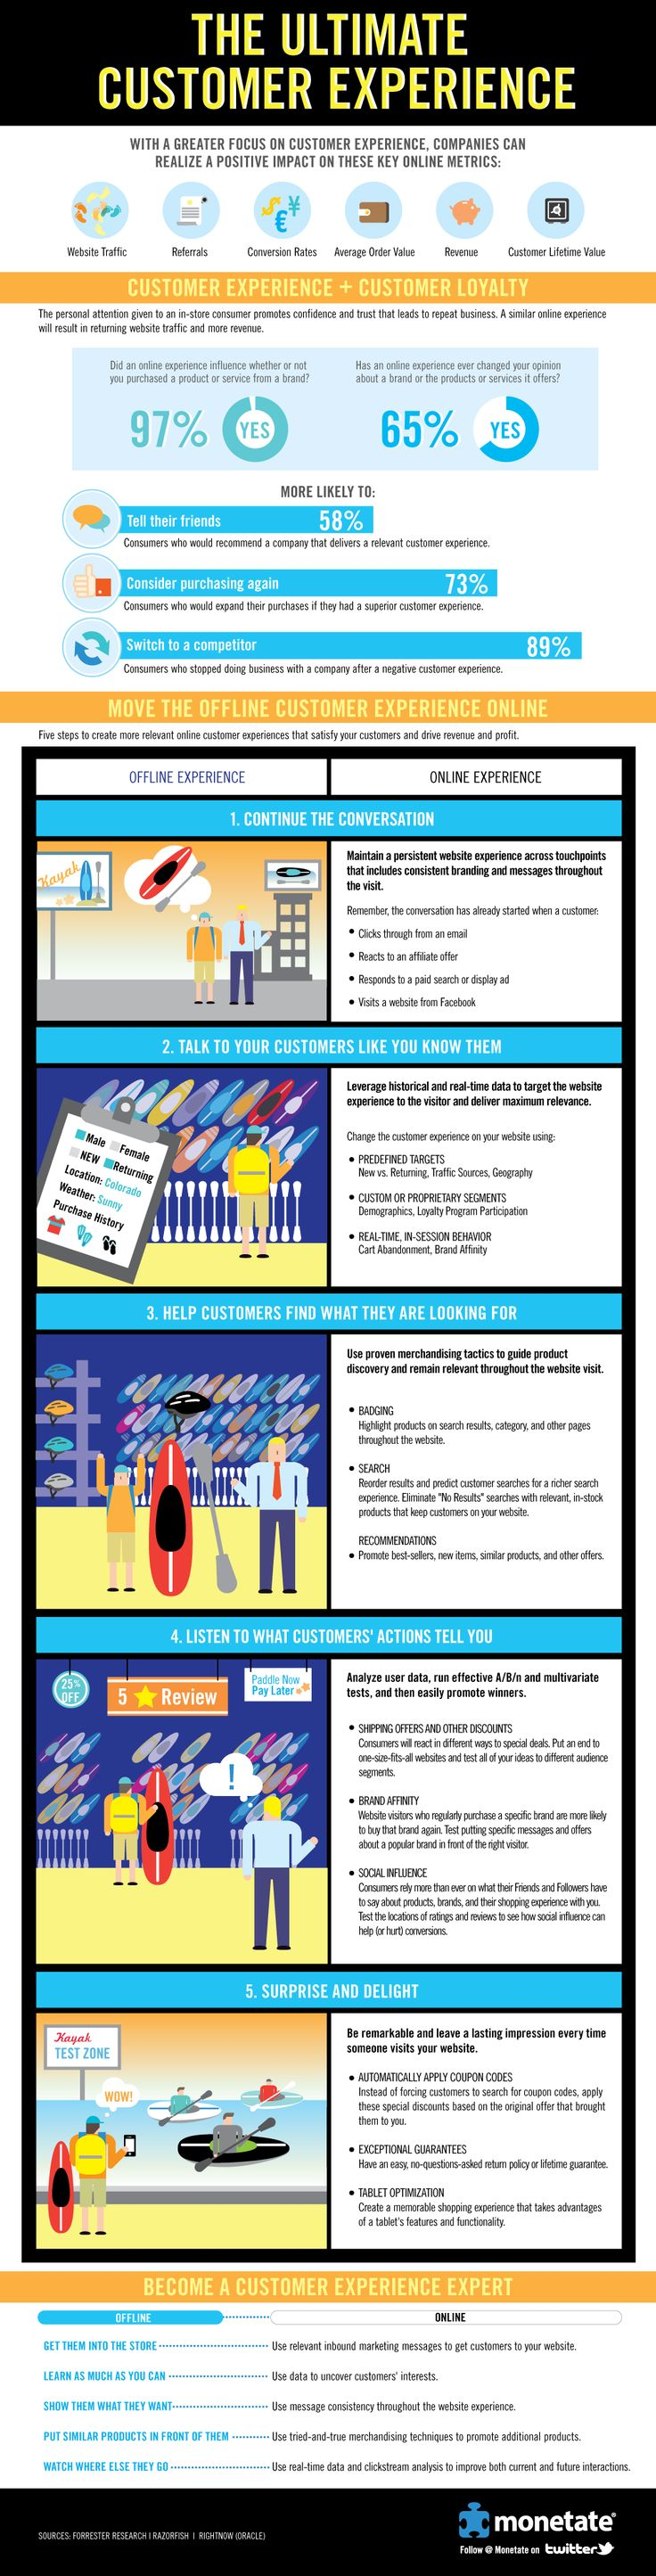 The Ultimate Customer Experience - [Infographic] #cx #custexp #cxm